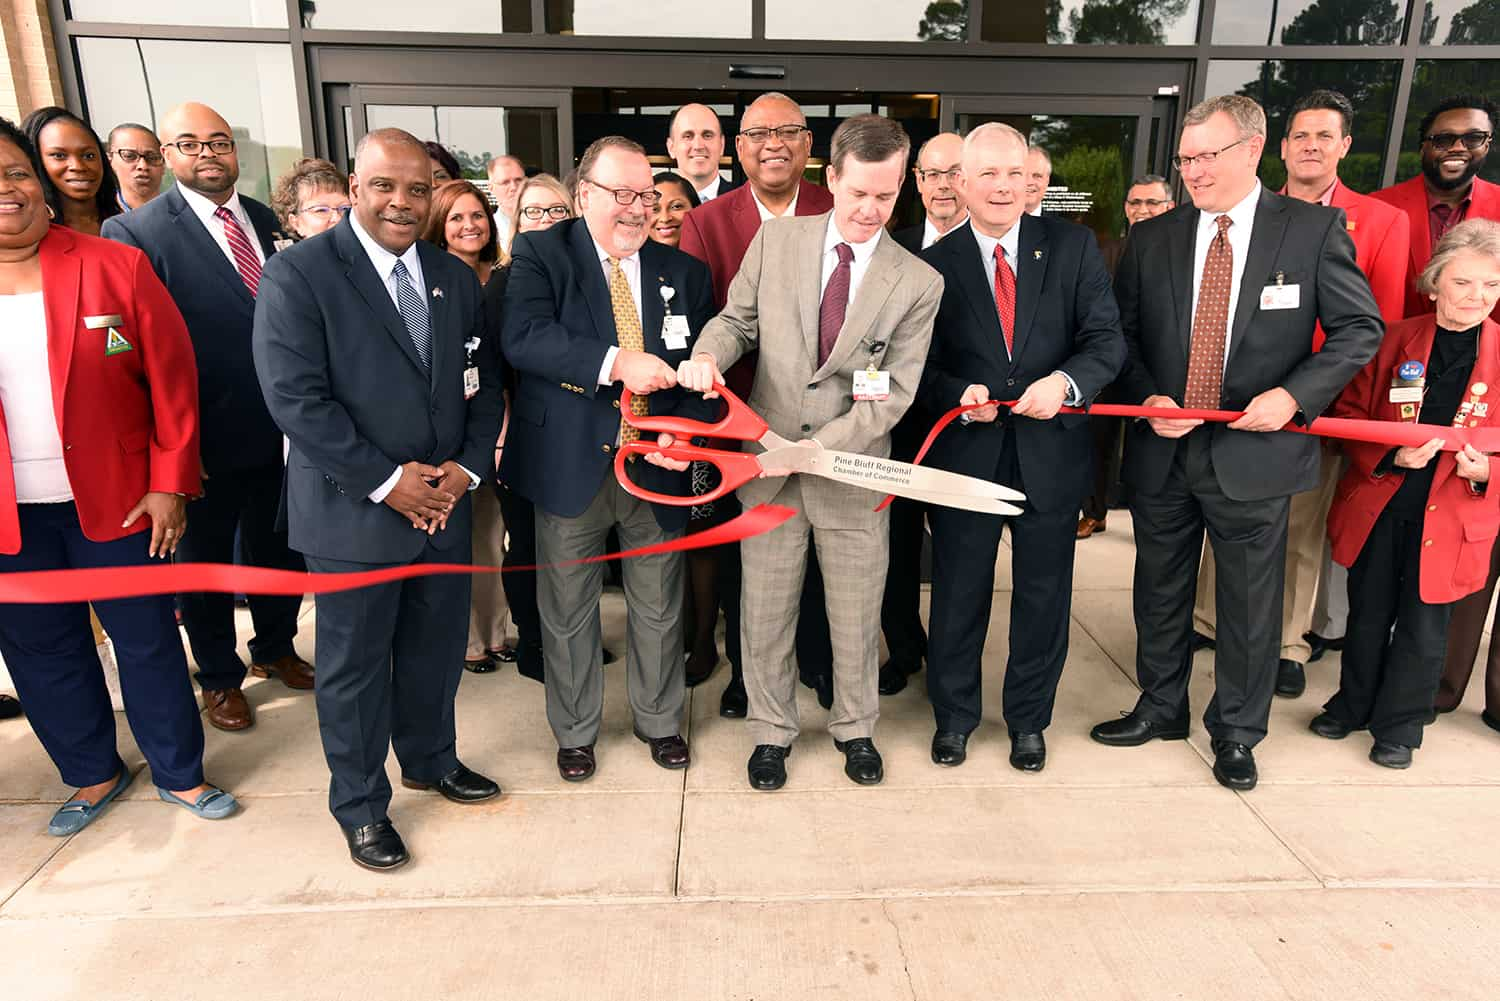 Mark Deal and Chancellor Cam Patterson use oversized scissors from the Pine Bluff Regional Chamber of Commerce for the official ribbon cutting at the South Central Regional Campus.